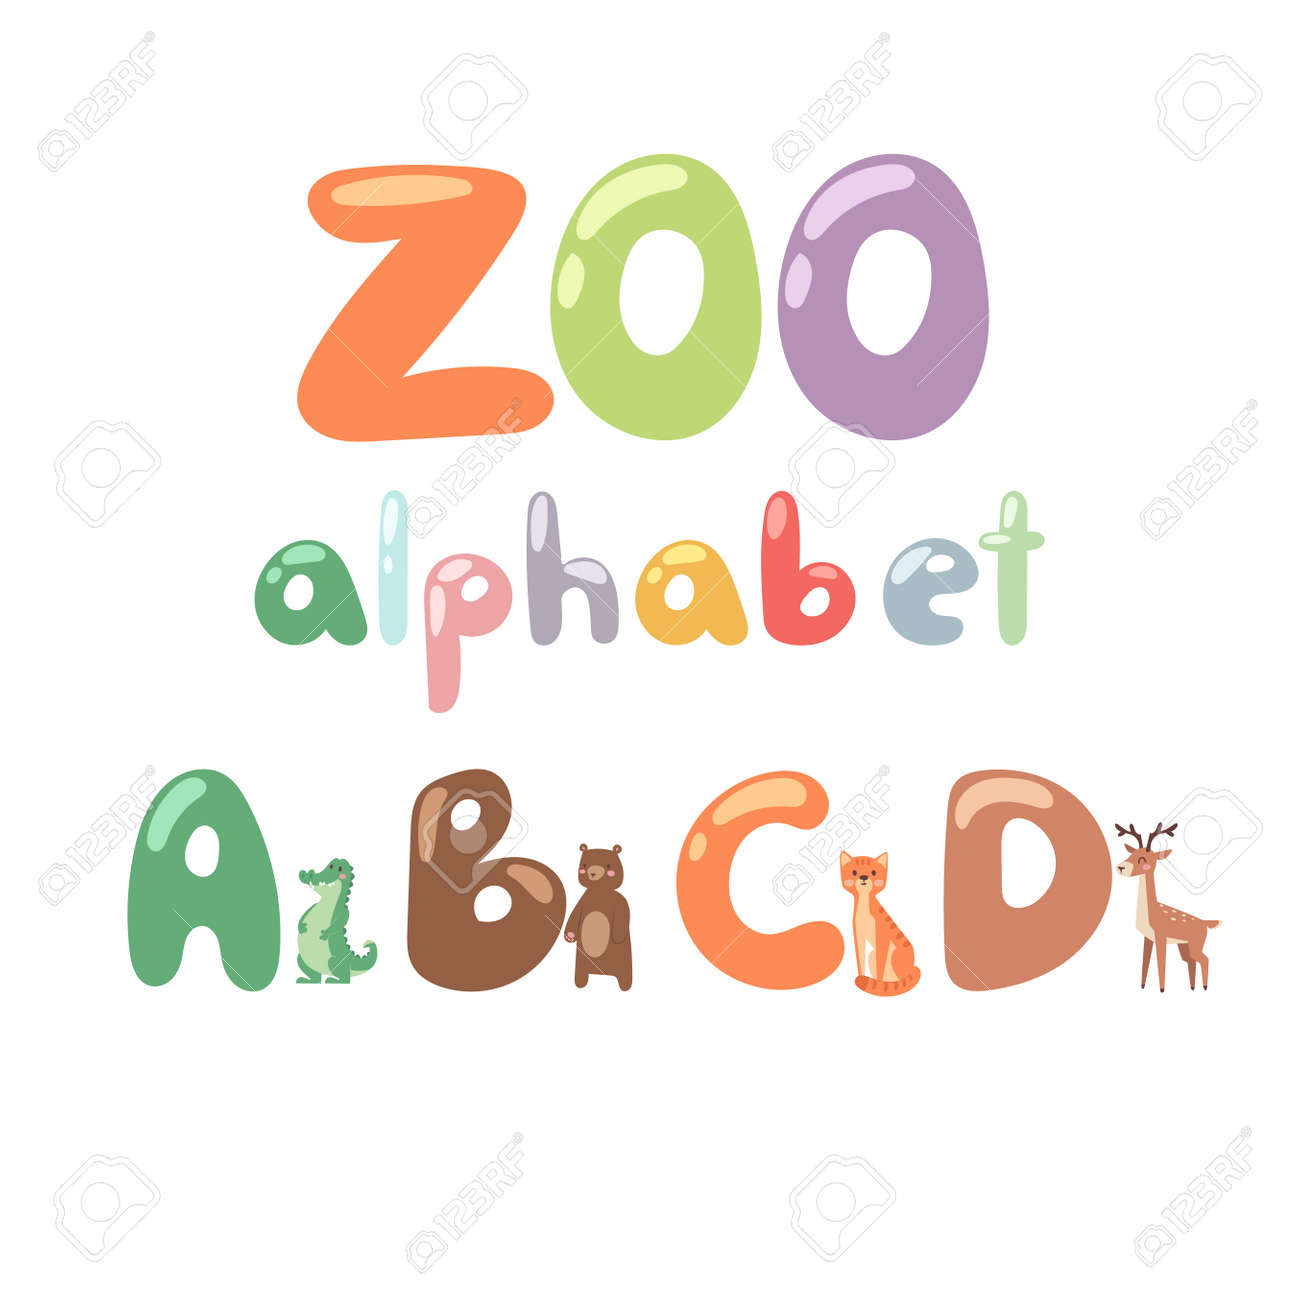 Cute Zoo Alphabet With Cartoon Animals Isolated And Funny Letters